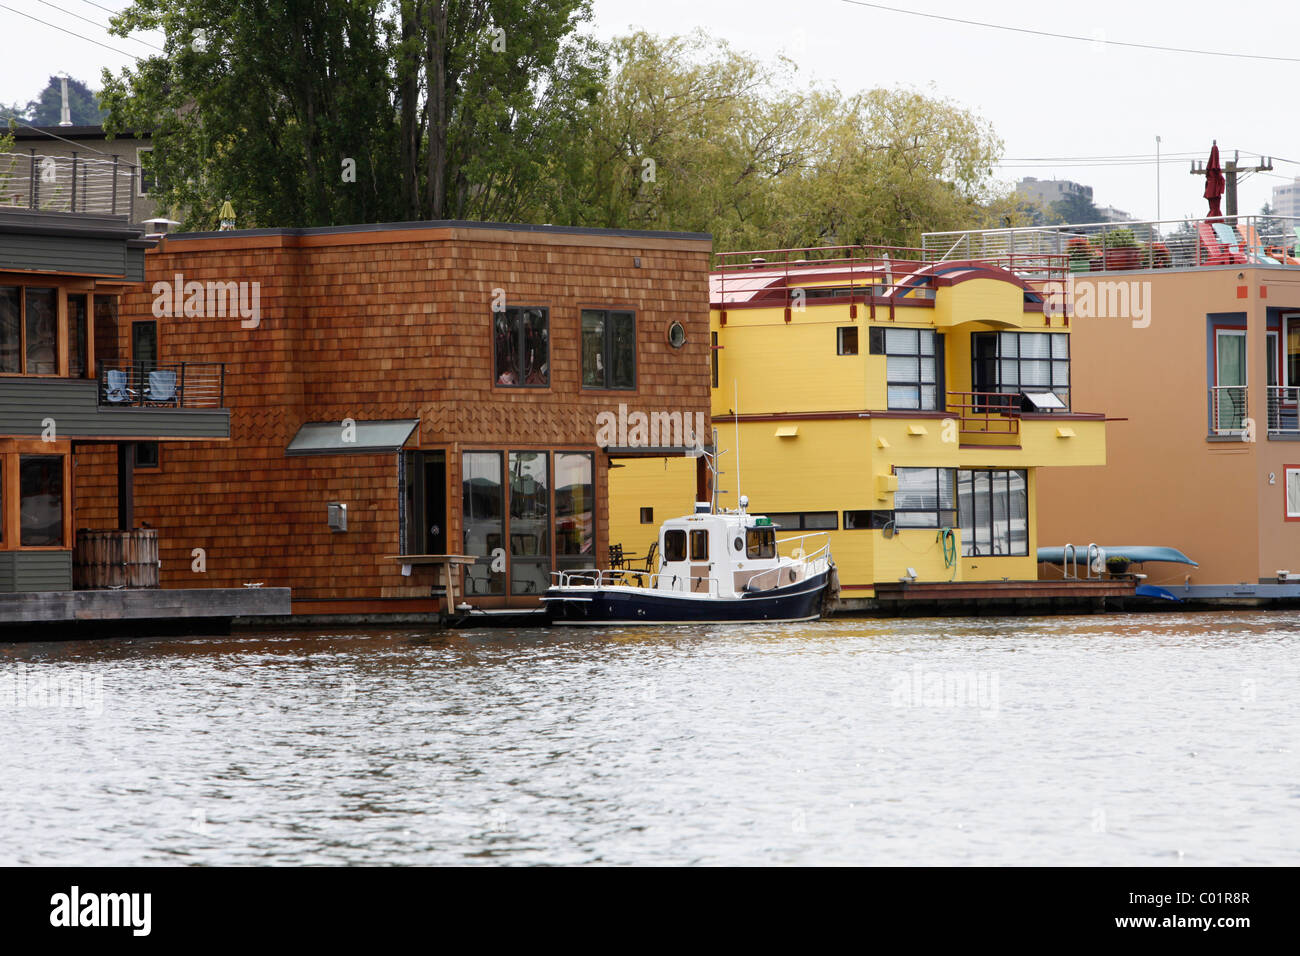 Floating homes on Lake Union, Seattle, Washington, USA Stock Photo